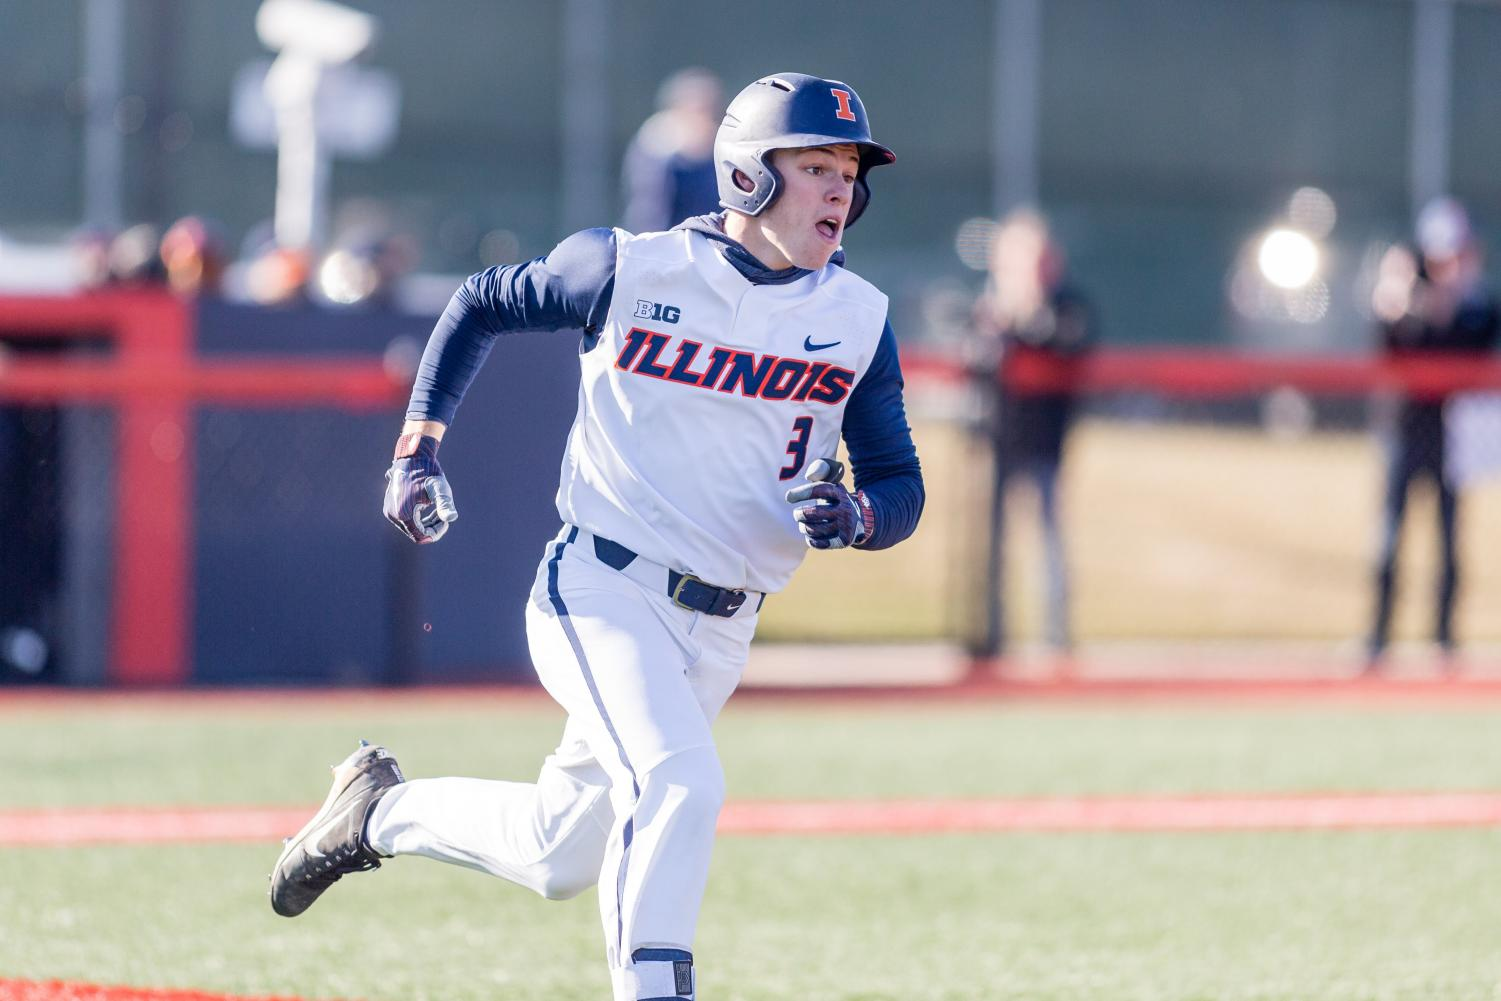 Illinois outfielder Jack Yalowitz runs to first. He played against Milwaukee at the Illinois Field on March 14.